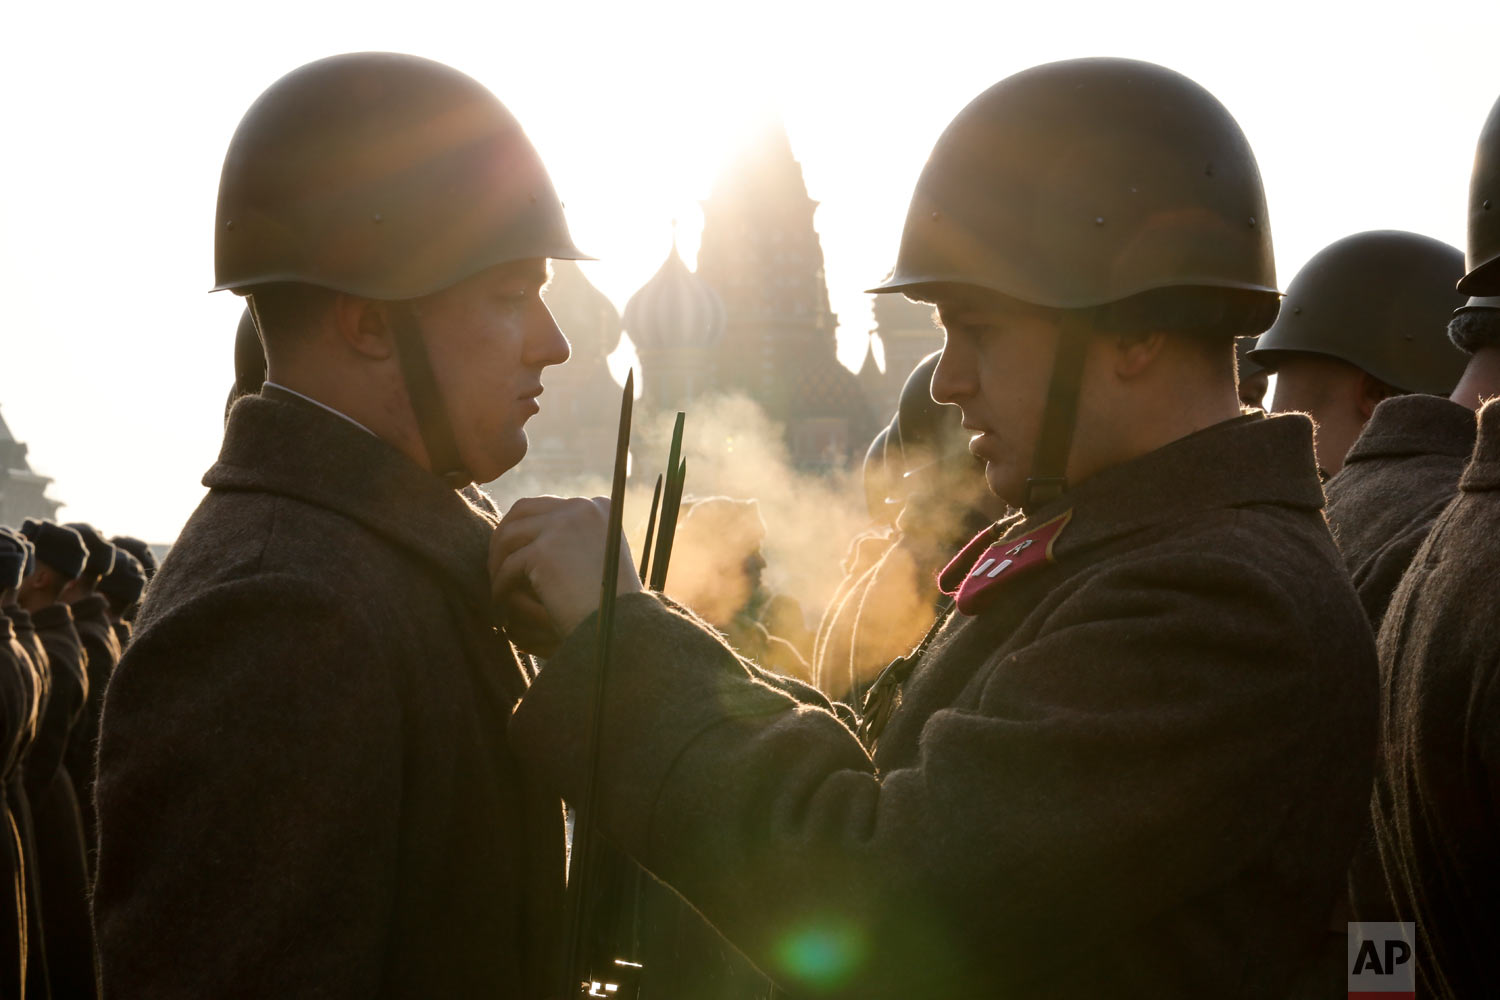 Russian soldiers dressed in Red Army World War II uniforms prepare to the start of the Nov. 7 parade in Red Square, with St. Basil Cathedral in the background, in Moscow, Russia, Wednesday, Nov. 7, 2018. The event marked the 77th anniversary of a World War II historic parade in Red Square and honored the participants in the Nov. 7, 1941 parade who headed directly to the front lines to defend Moscow from the Nazi forces. (AP Photo/Alexander Zemlianichenko)